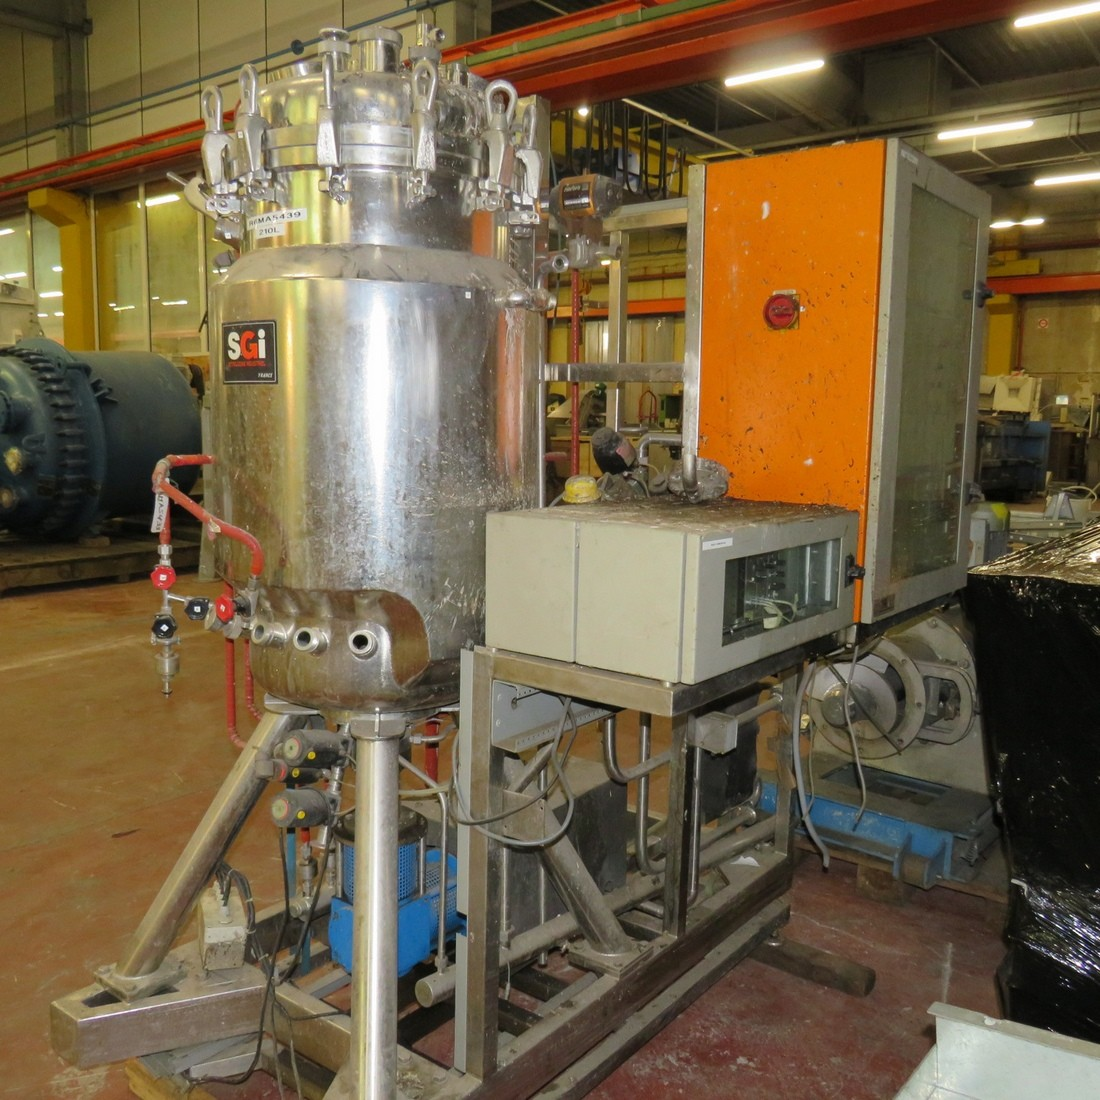 R6MA6168 Stainless steel CMV mixing tank - 210 liters - double jacket